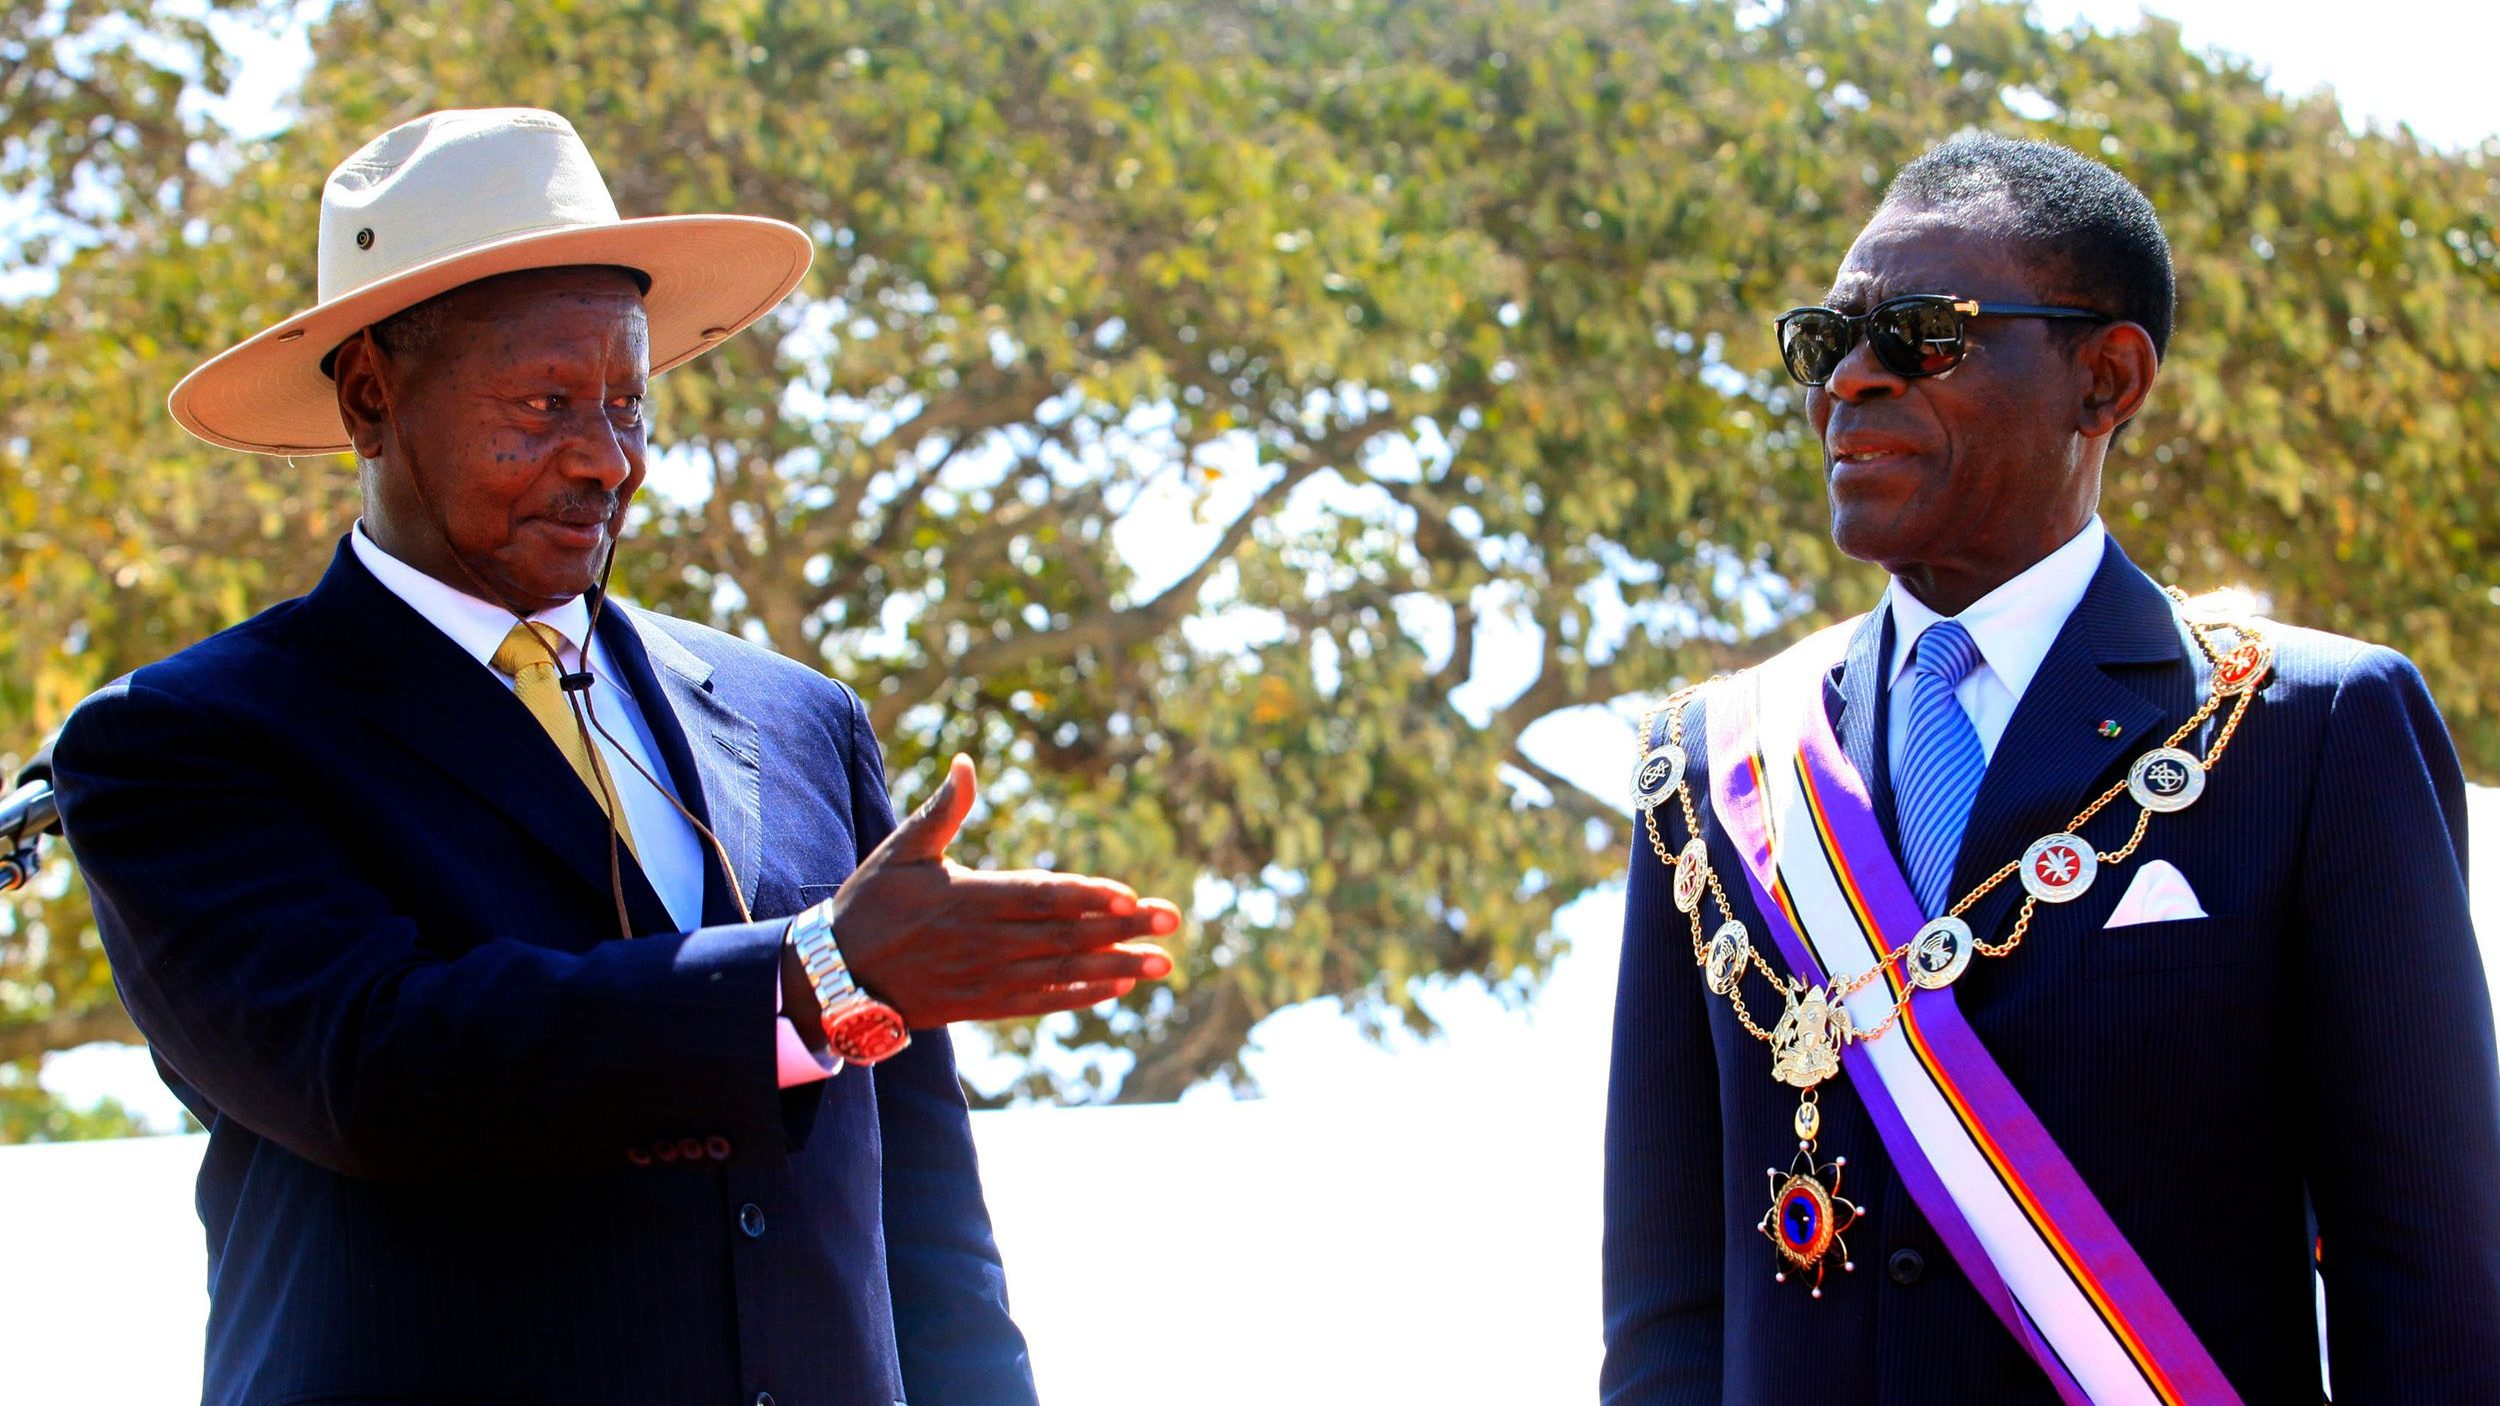 Uganda President Yoweri Museveni decorates his Equatorial Guinea counterpart Teodoro Obiang Nguema Mbasogo during the Pearl of Africa medal awards ceremony in Kapchorwa